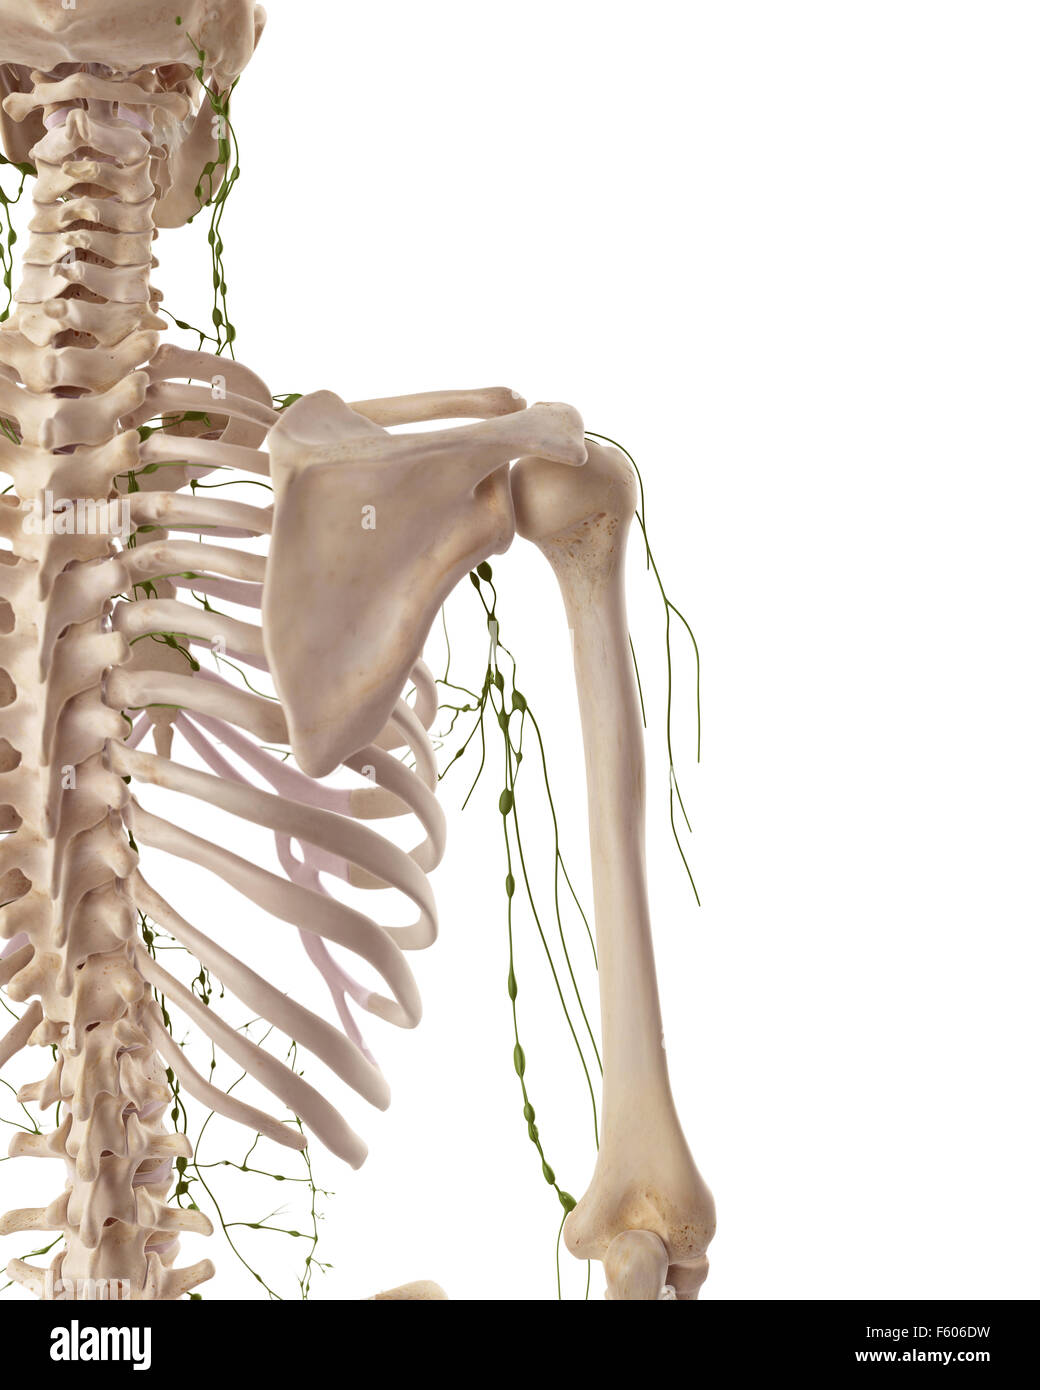 Medically Accurate Illustration Of The Axillary Lymph Nodes Stock